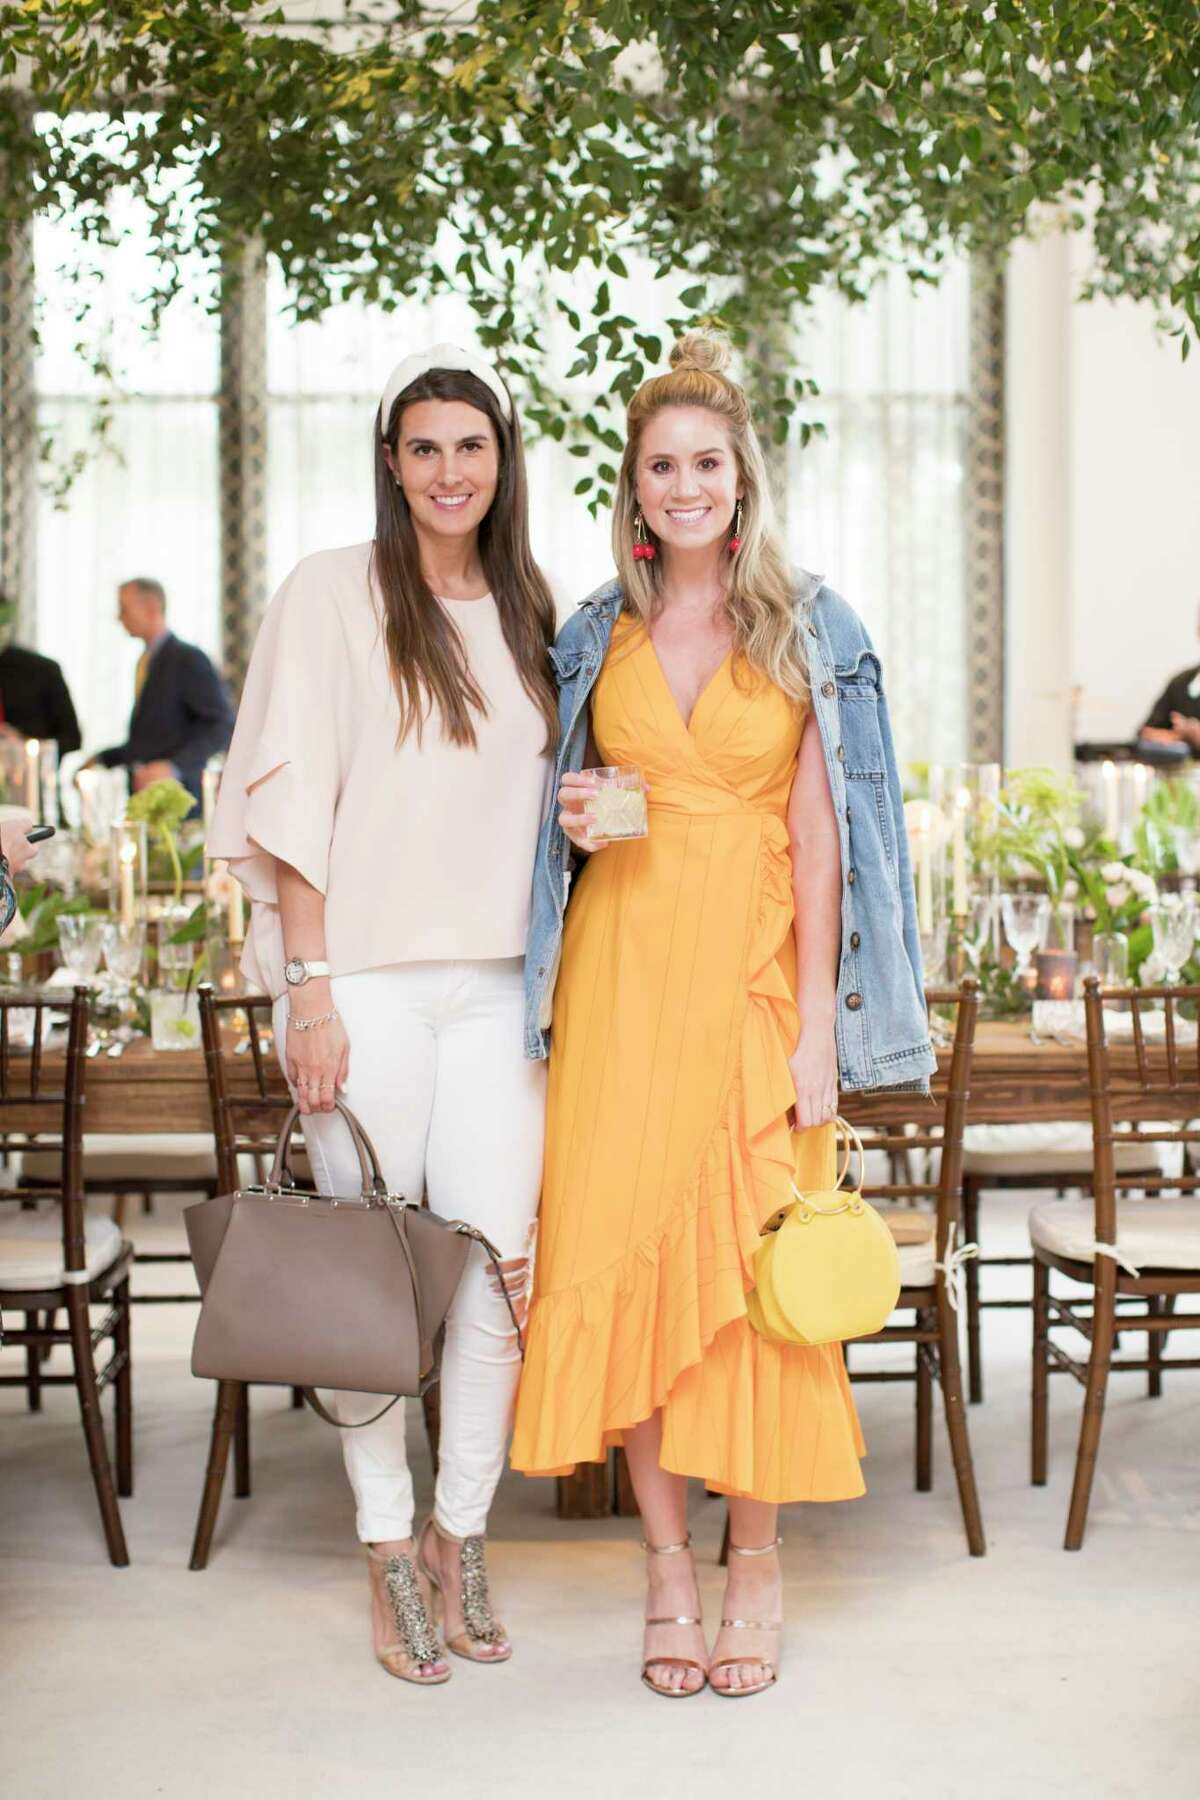 Kathryn Swain and Allison Robertson attend a dinner party at Tootsies on Thursday, March 28, 2019, in Houston.